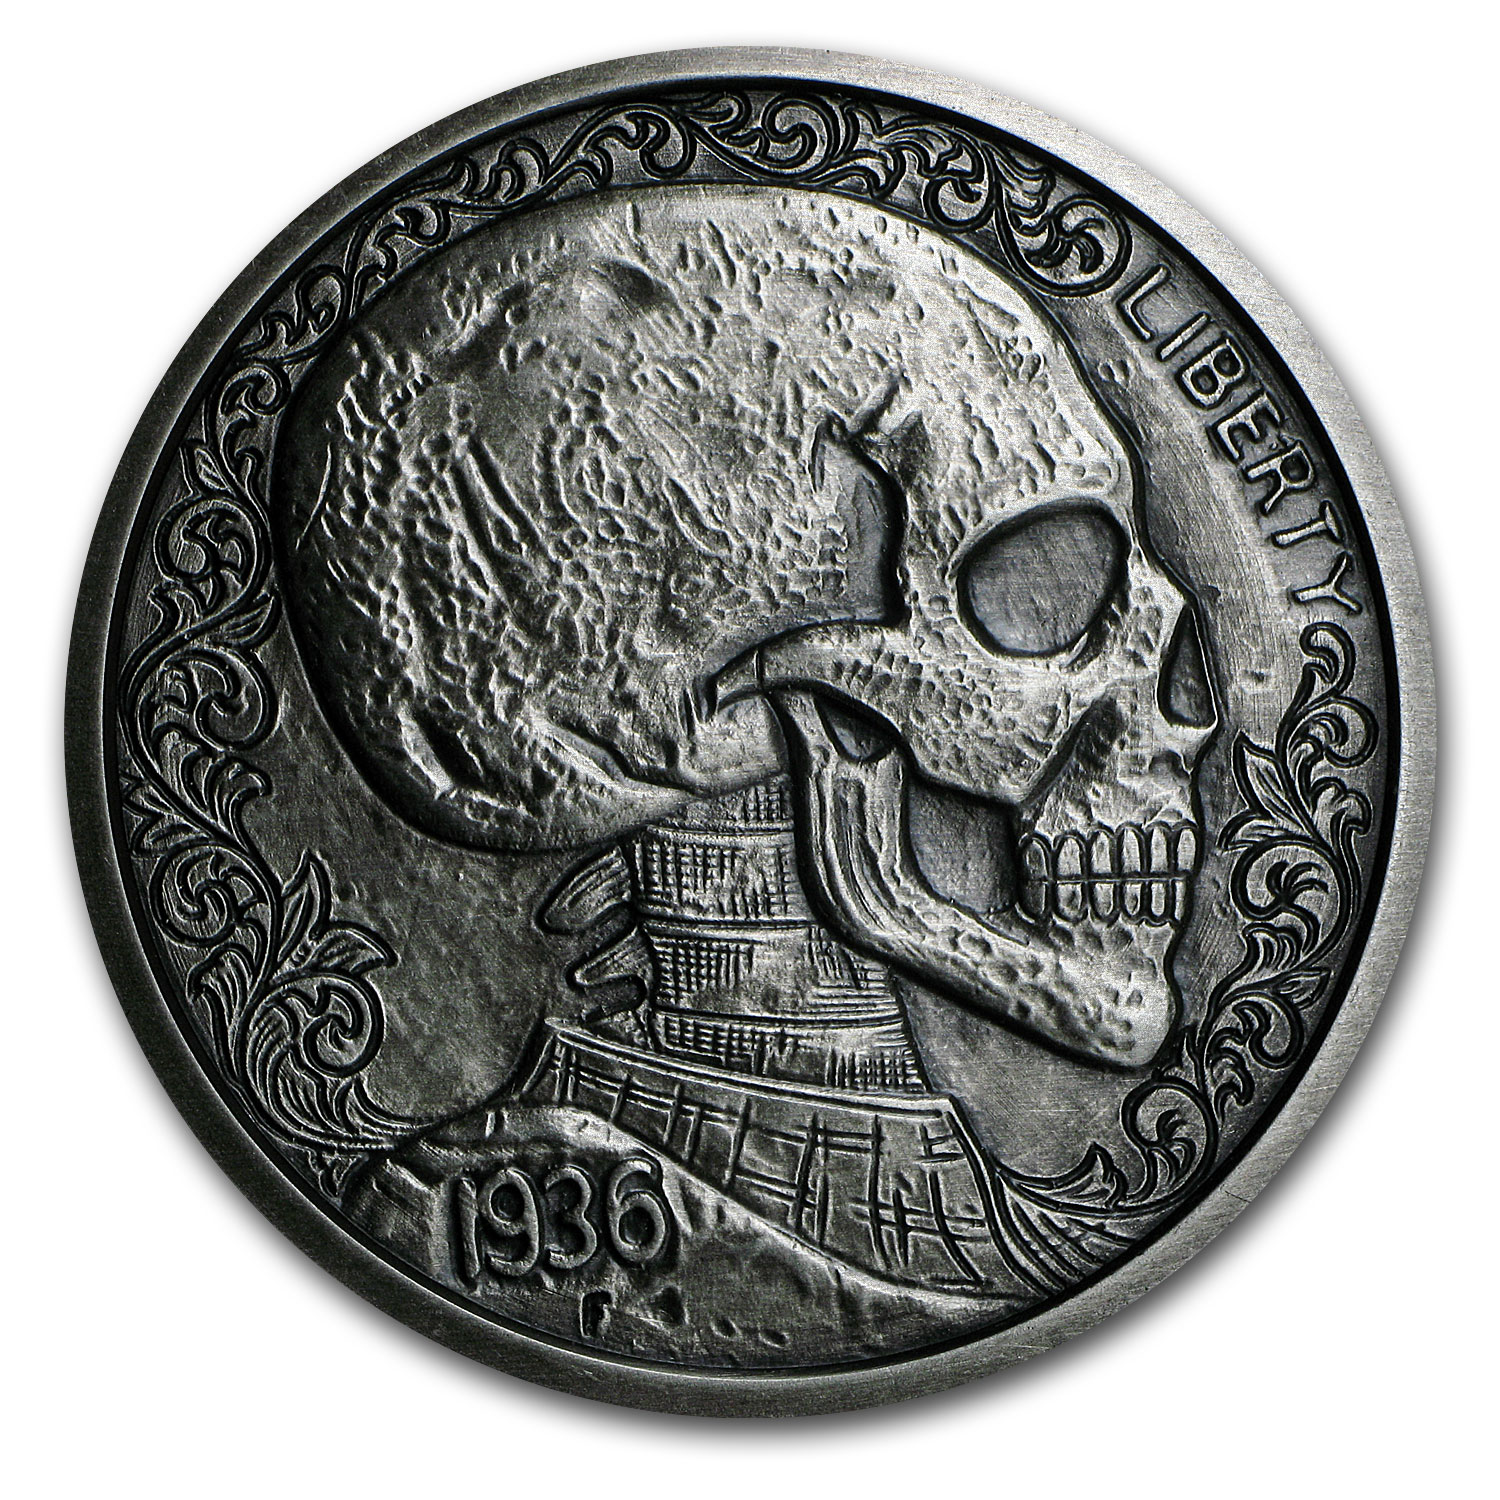 5 oz Silver Antique Round Hobo Nickel Replica (Skulls & Scrolls)